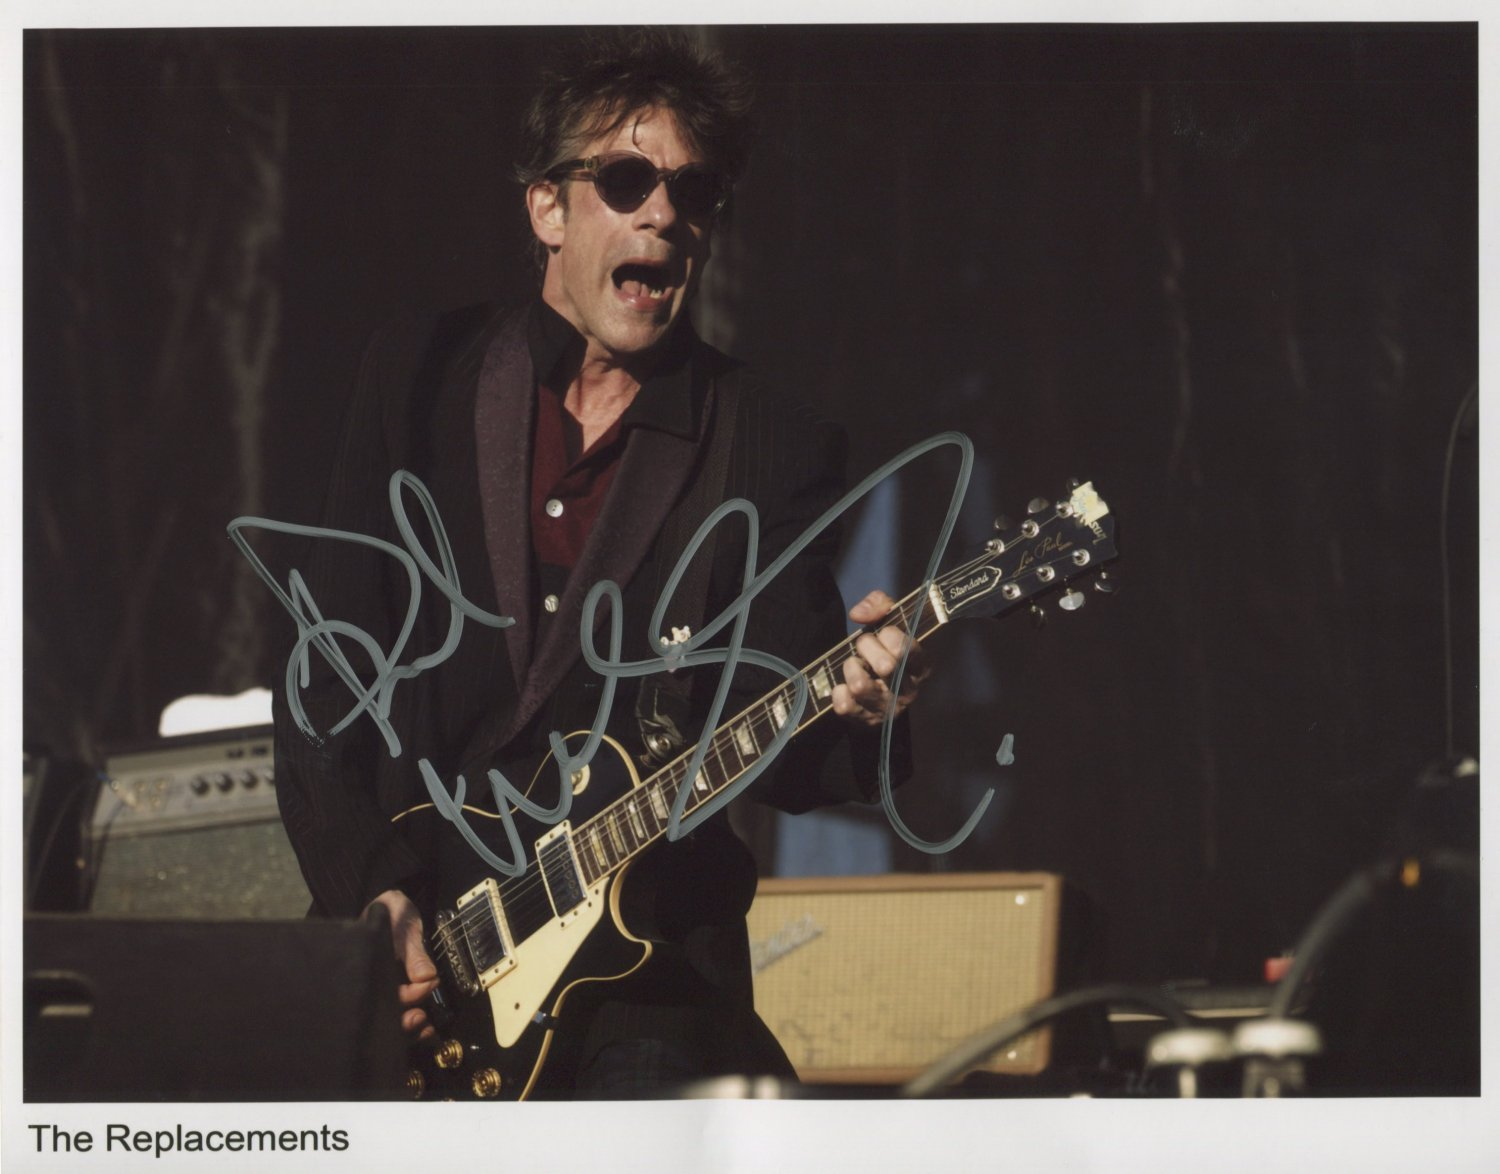 """Paul Westerberg The Replacements SIGNED 8"""" x 10"""" Photo + Certificate Of Authentication 100% Genuine"""